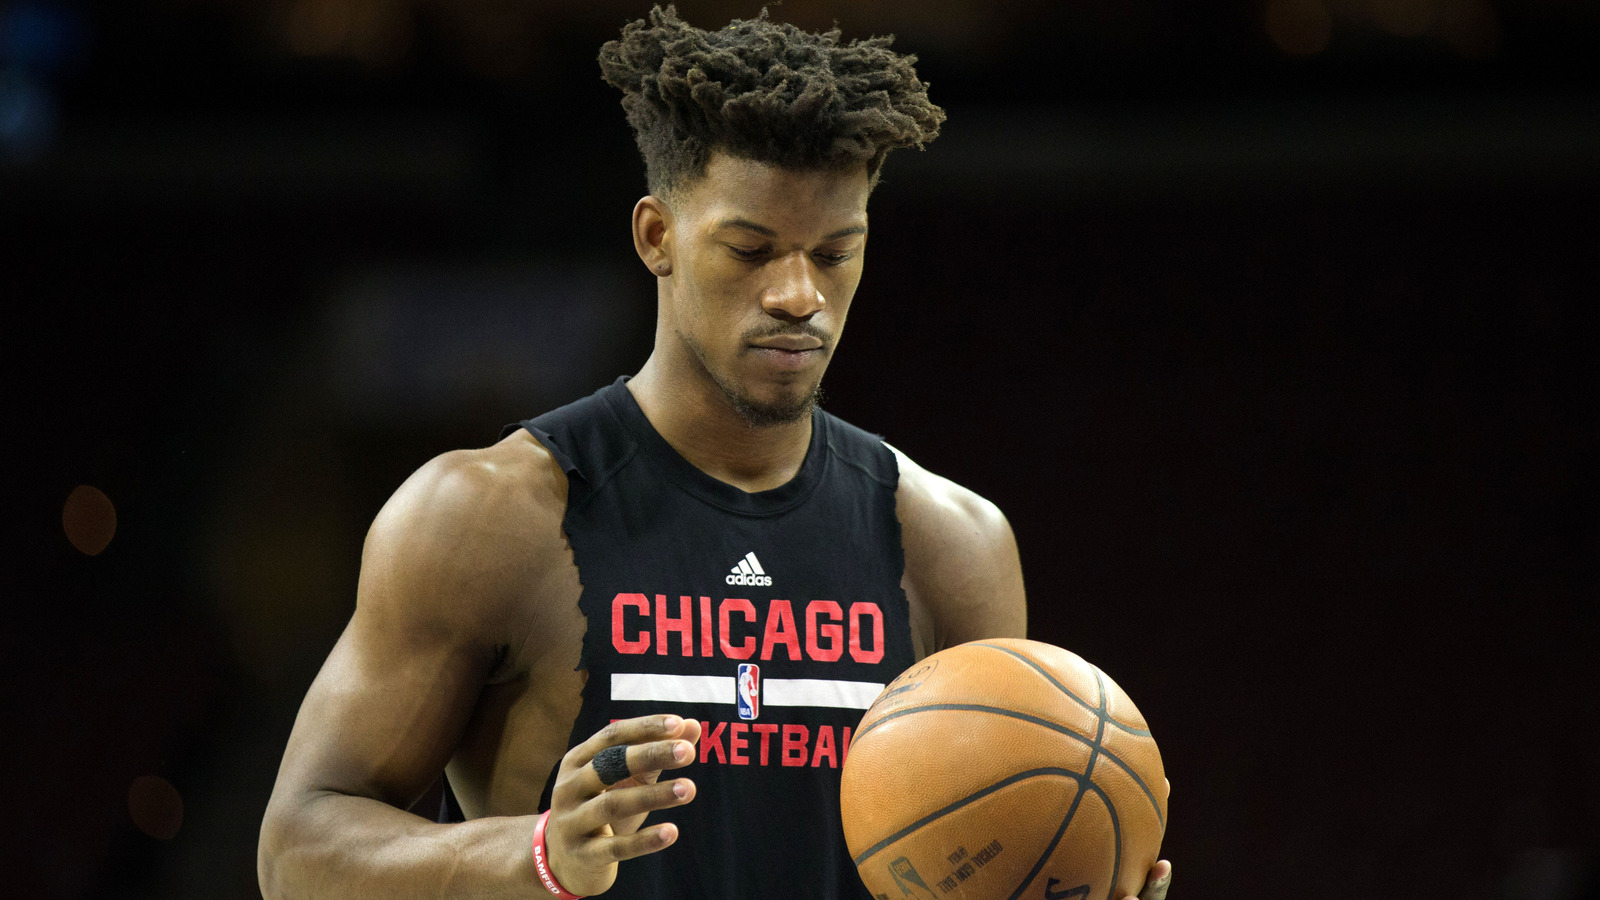 Vancouver Canucks Wallpaper Hd Grading The Deal Wolves Acquire Jimmy Butler From Bulls